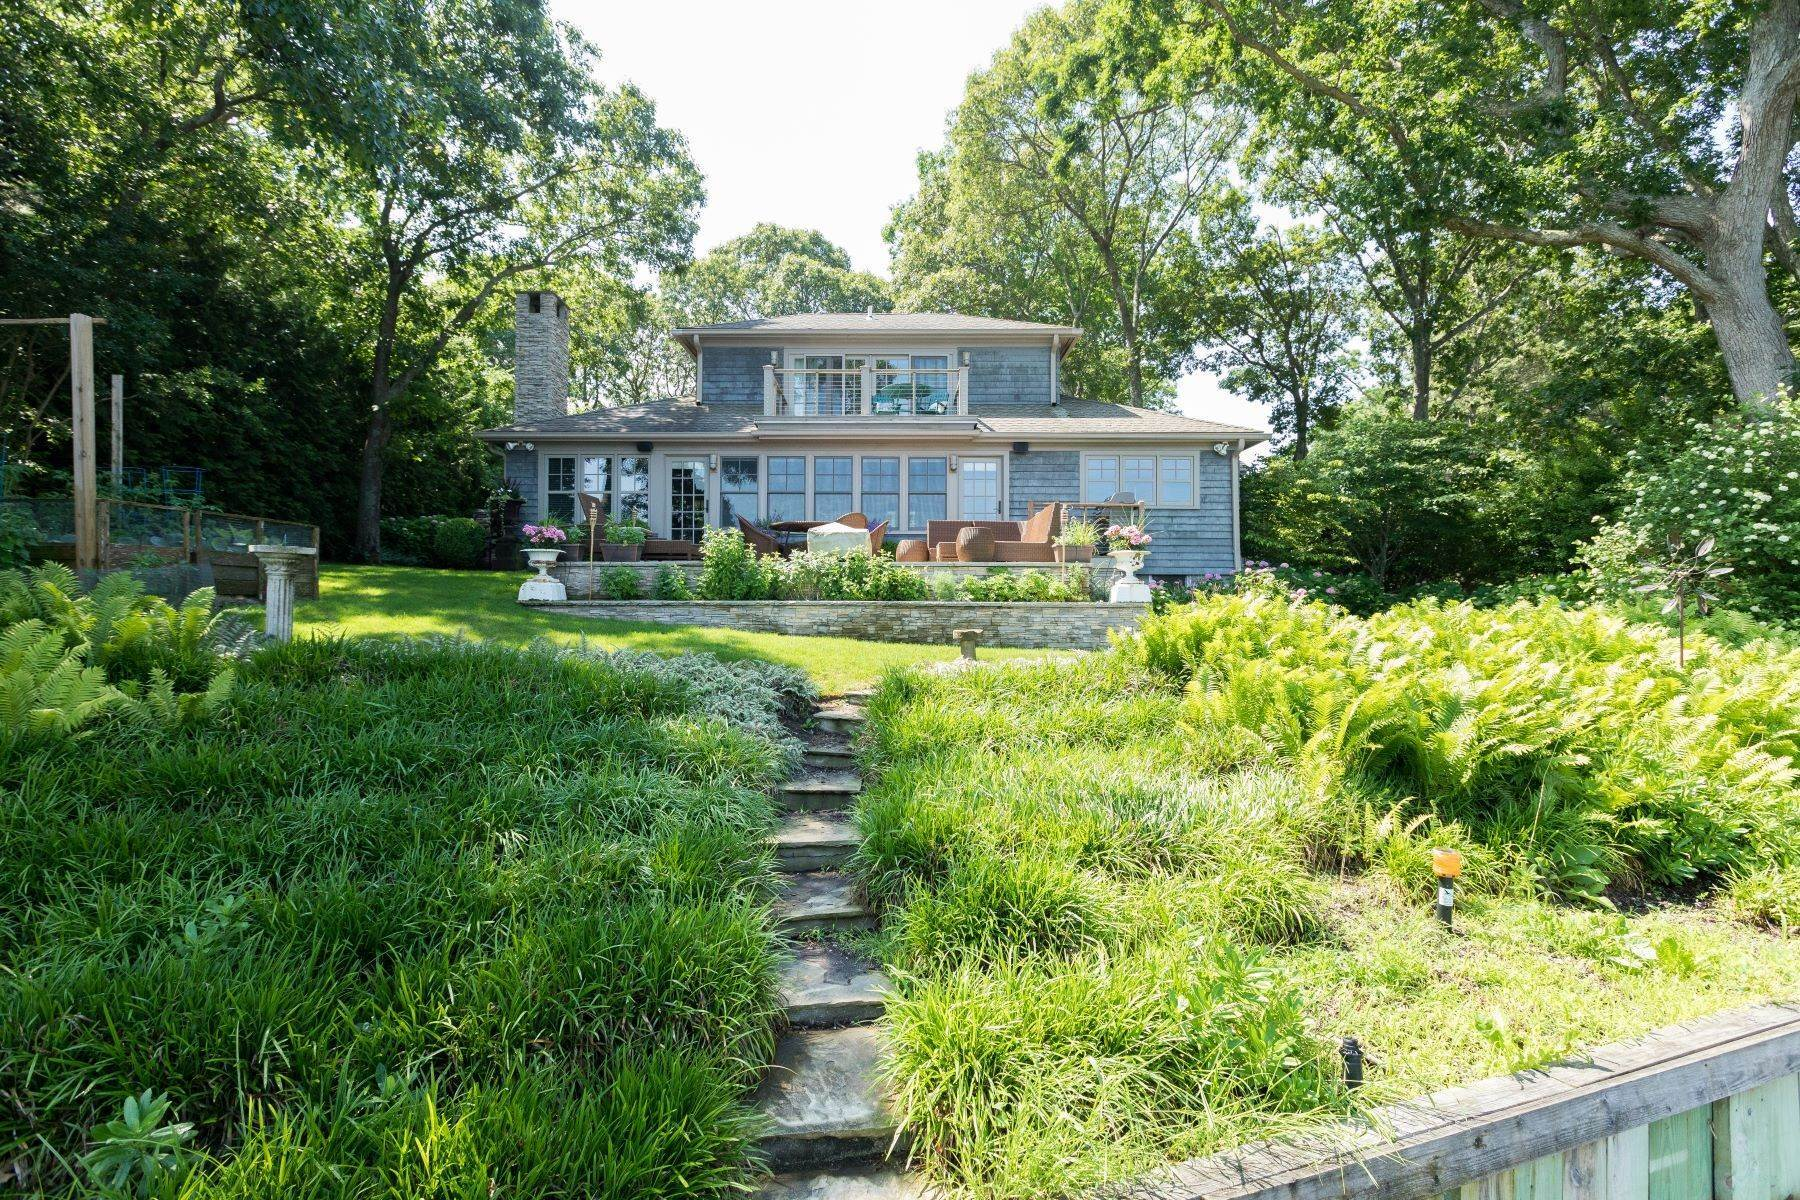 Single Family Homes for Sale at 1235 Luptons Point Road, Mattituck, NY 11952 1235 Luptons Point Road Mattituck, New York 11952 United States